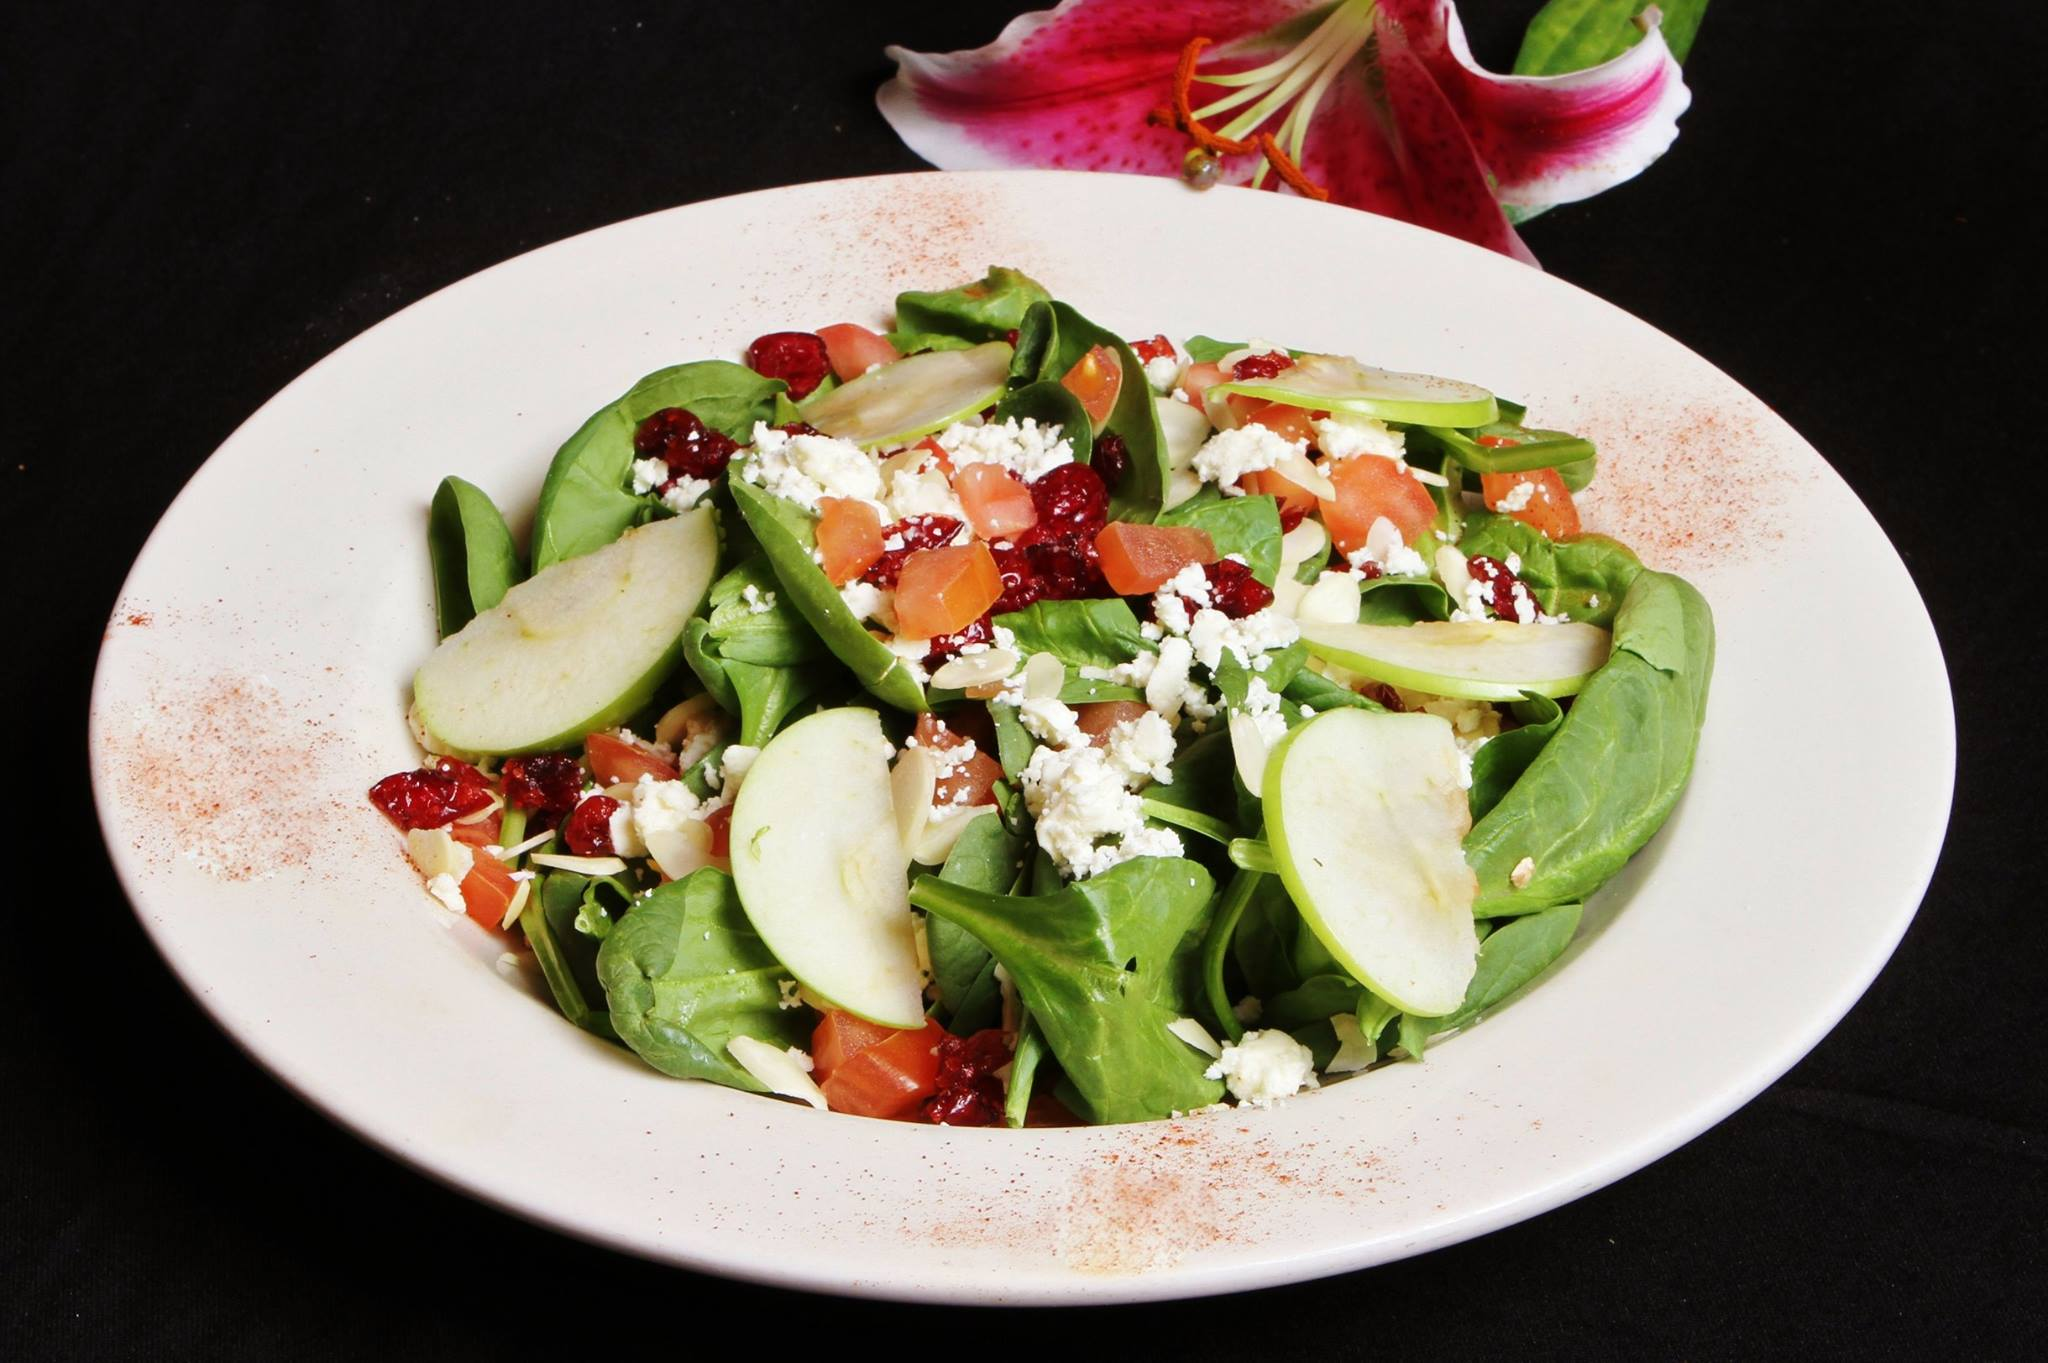 Mixed green salad with dried cranberries, feta cheese and sliced apples